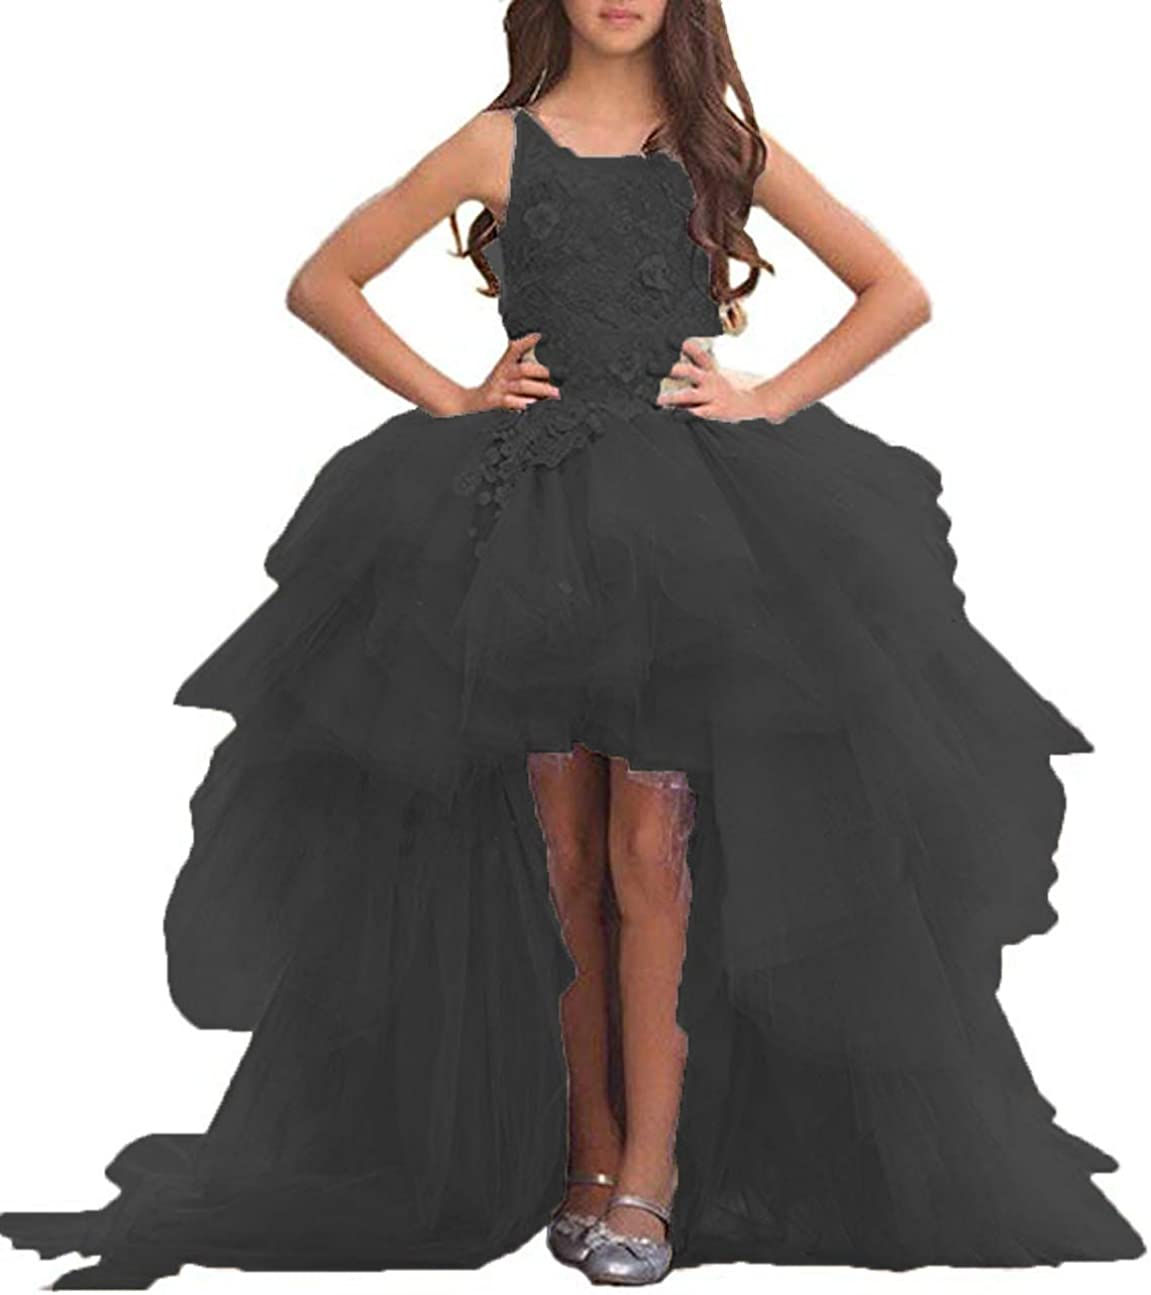 Adela Richer Girls' Lace High Pageant New Shipping Free Neck Go Bombing free shipping Ball Dresses